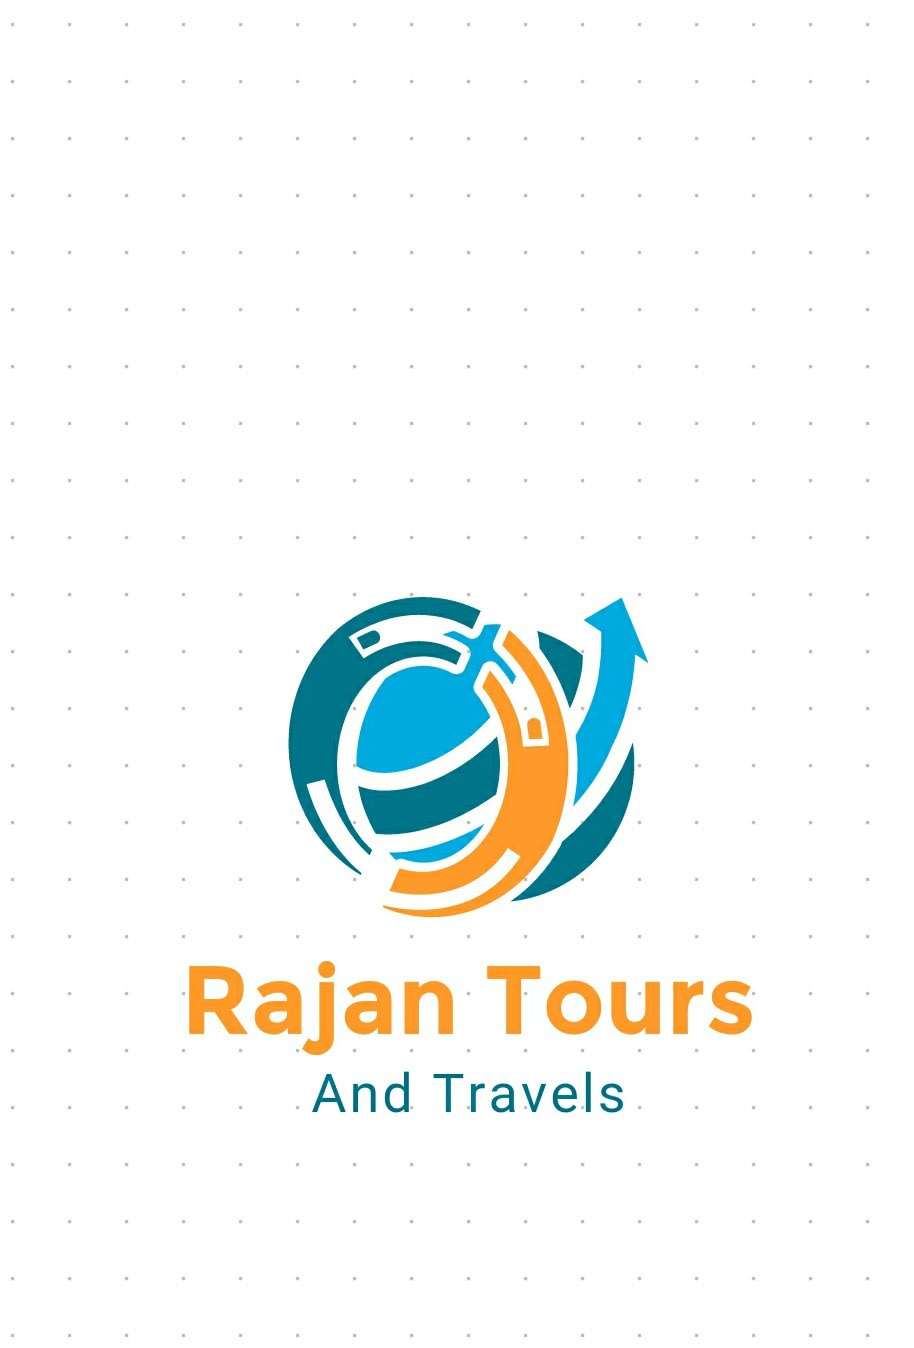 Rajan Tours And Travels